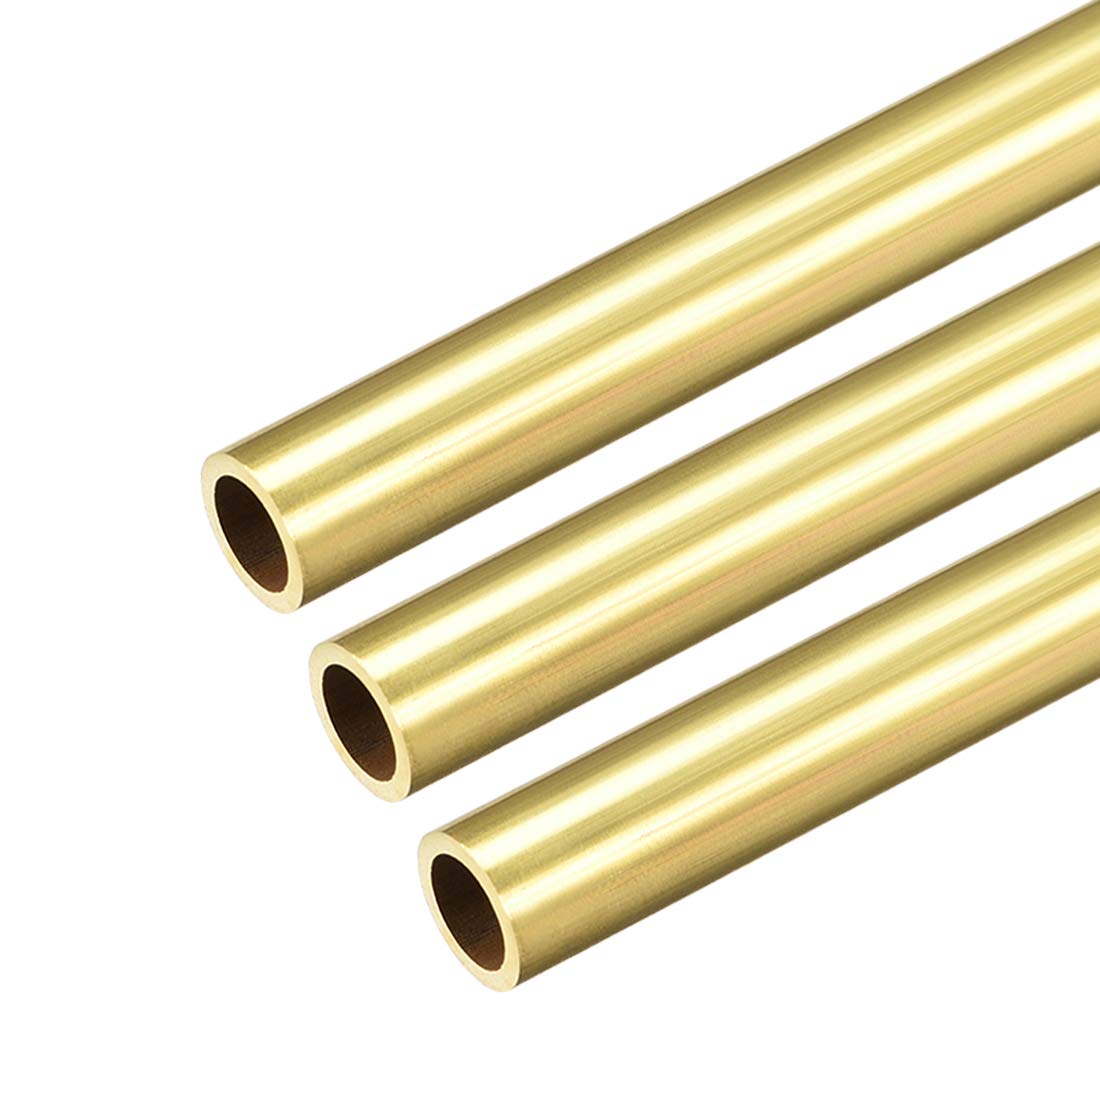 Brass Round Tube 300mm Length 3mm OD 1mm Wall Thickness Seamless Pipe Tubing